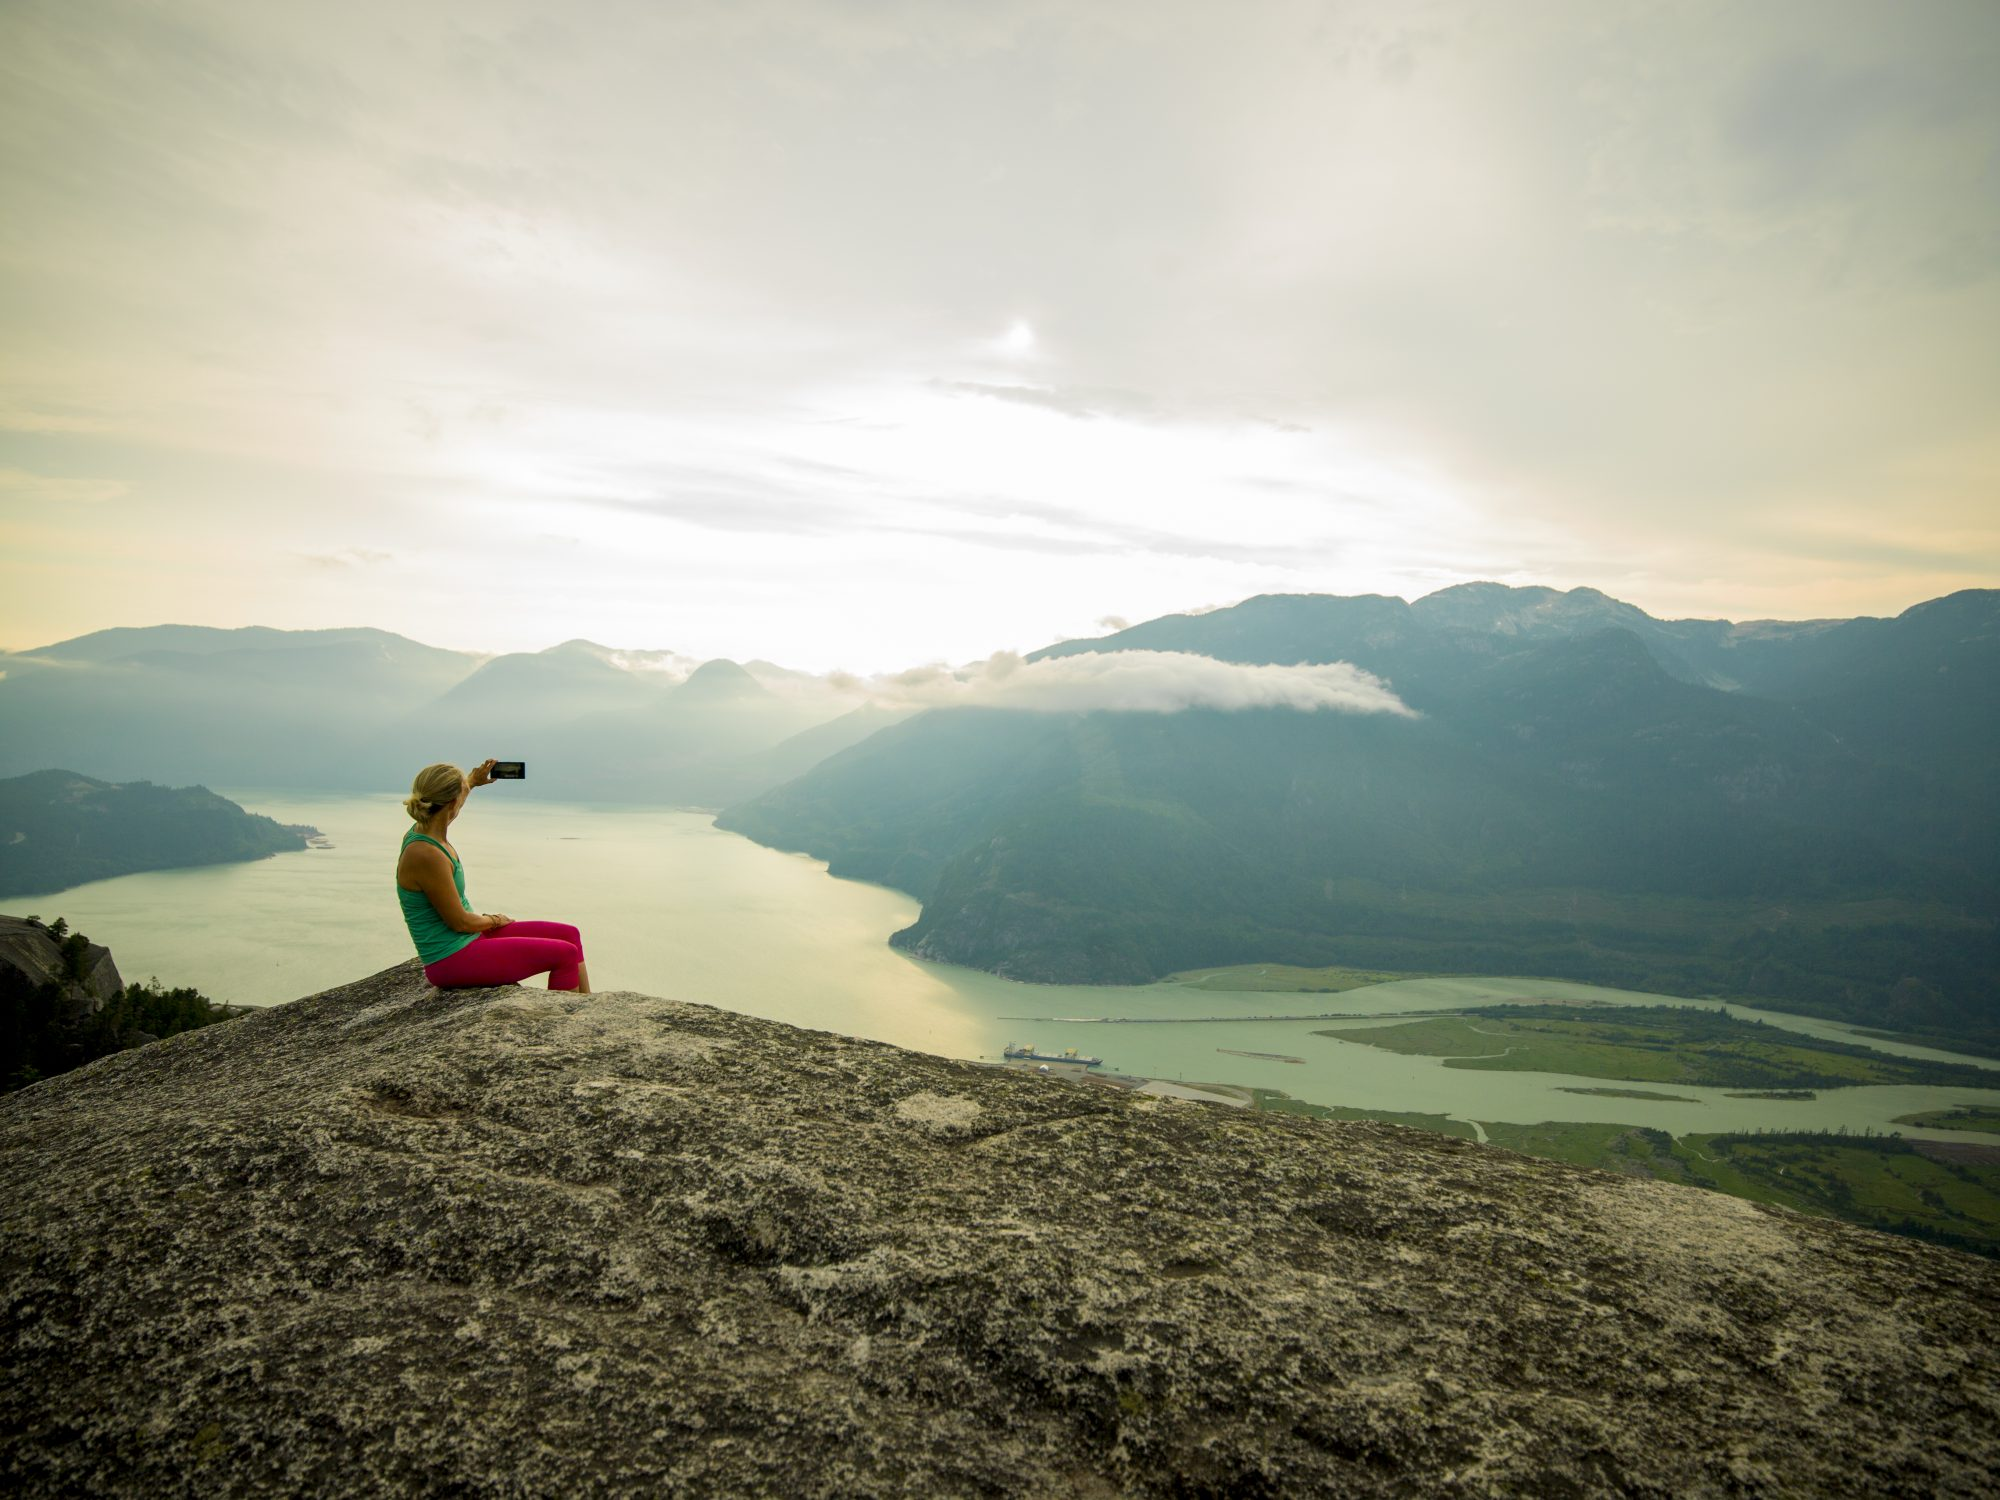 Woman Takes Selfie on Mountain Top